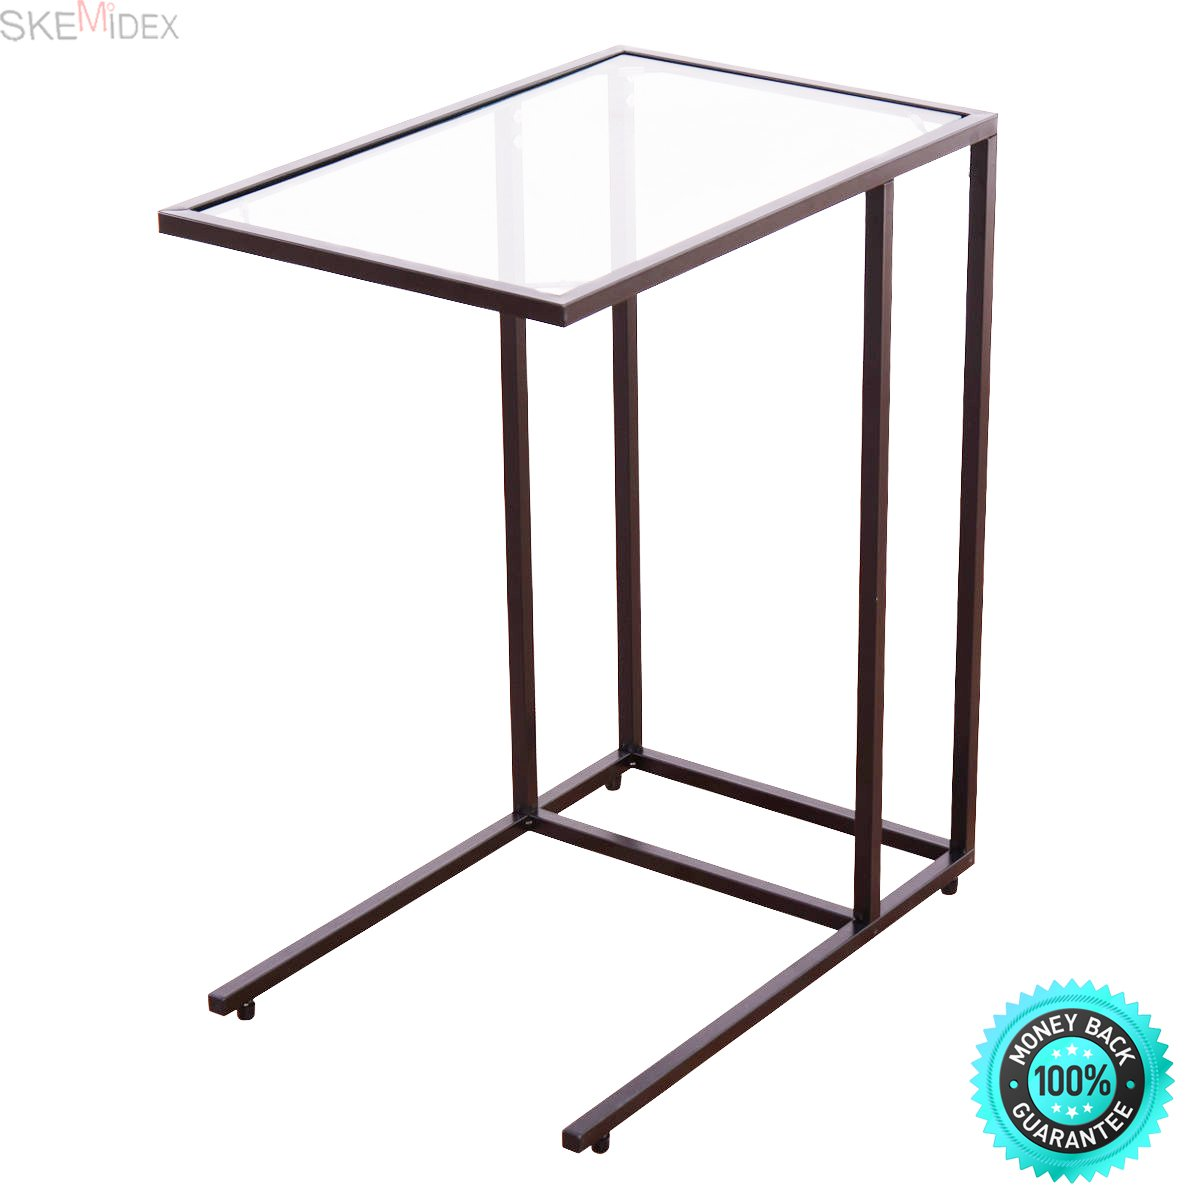 SKEMiDEX---Coffee Tray Side Sofa End Table Ottoman Couch Stand TV Lap Snack W/Glass Top New. Can be used as end tables, lamp tables, decorative displays tables, or simply accent pieces by SKEMiDEX (Image #1)